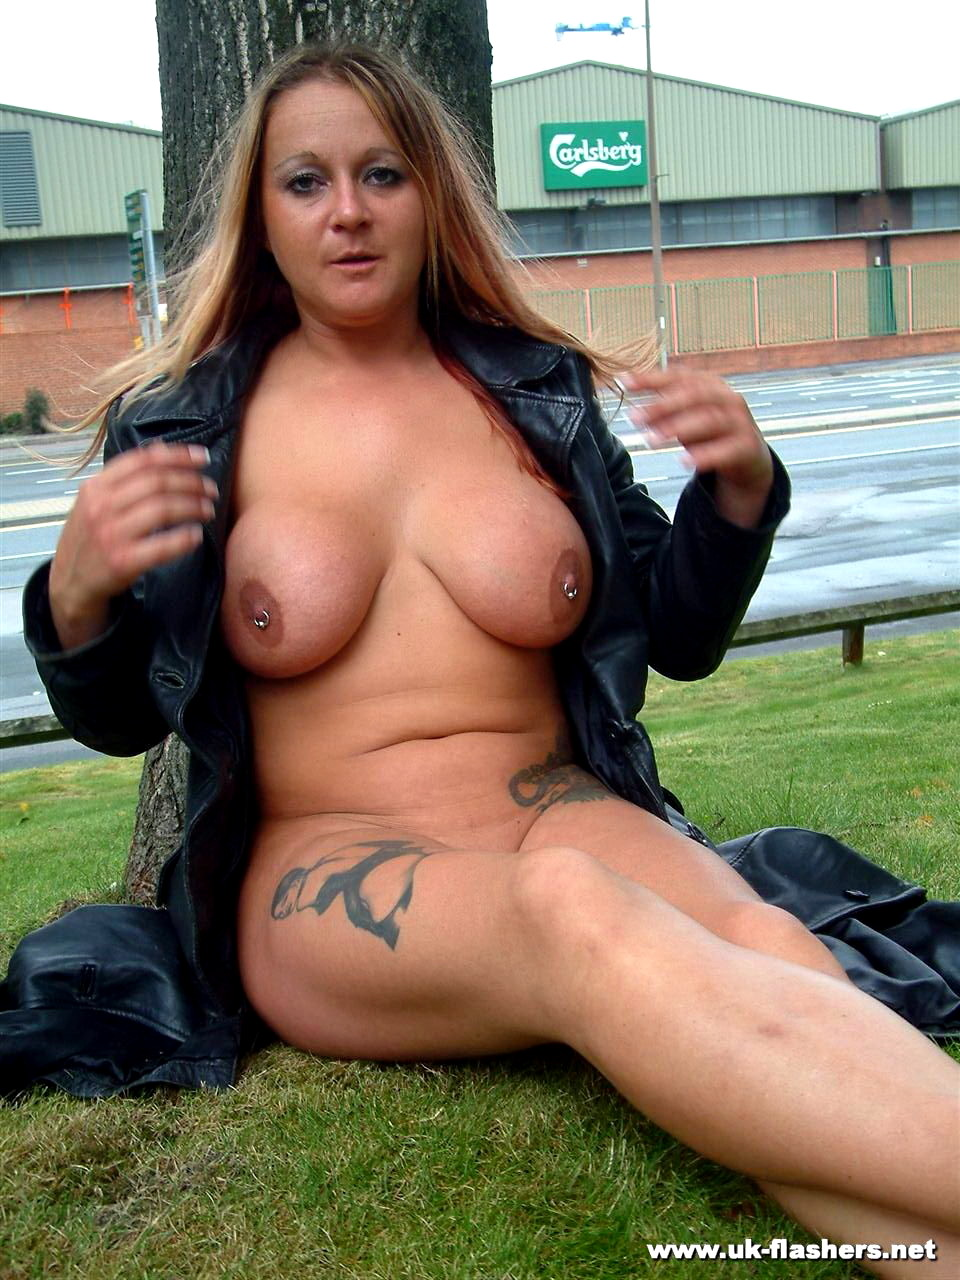 Busty milf ginas public nudity and english flashers outdoors 6